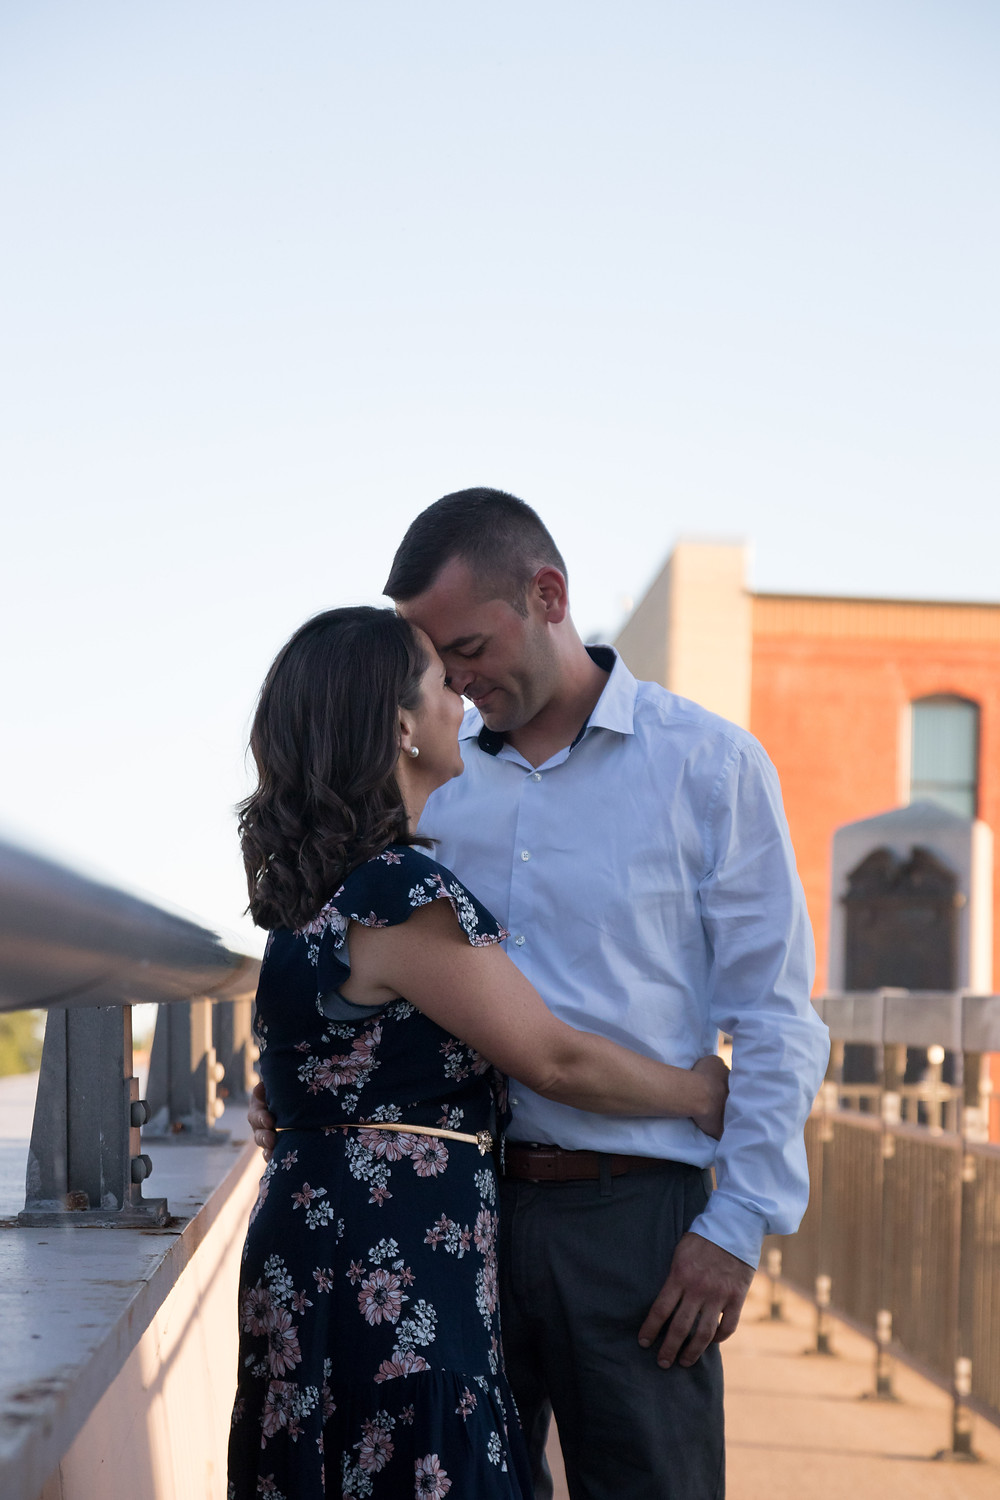 Gateway Harbor Webster St Bridge Tonawanda Engagement Portrait Photography